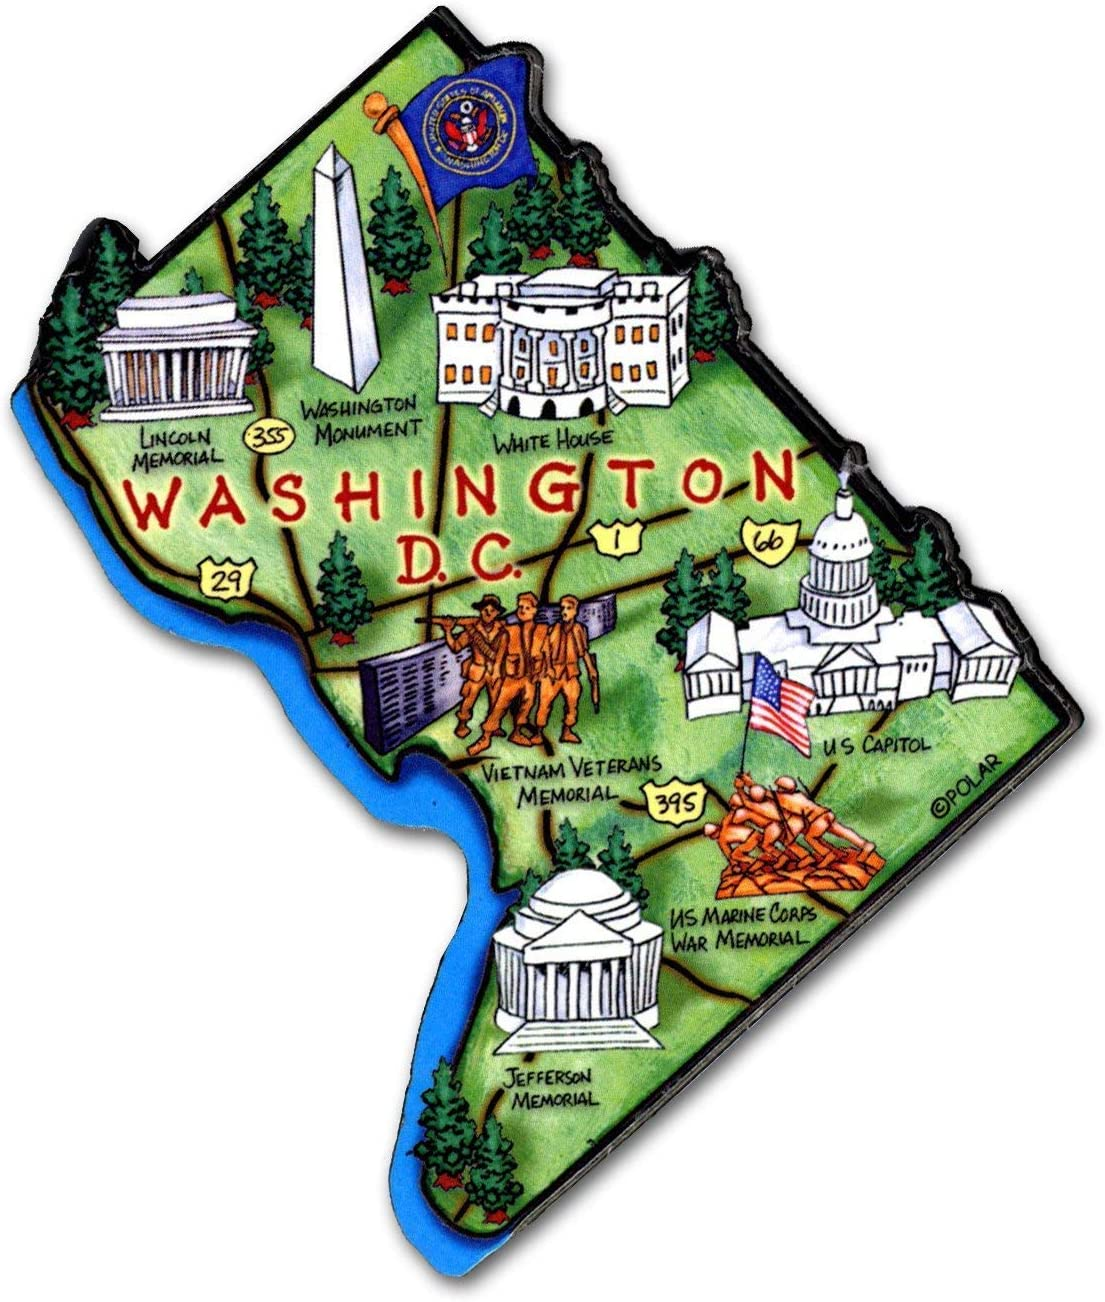 Washington D.C. Decowood Jumbo Wood Fridge Magnet 3.5